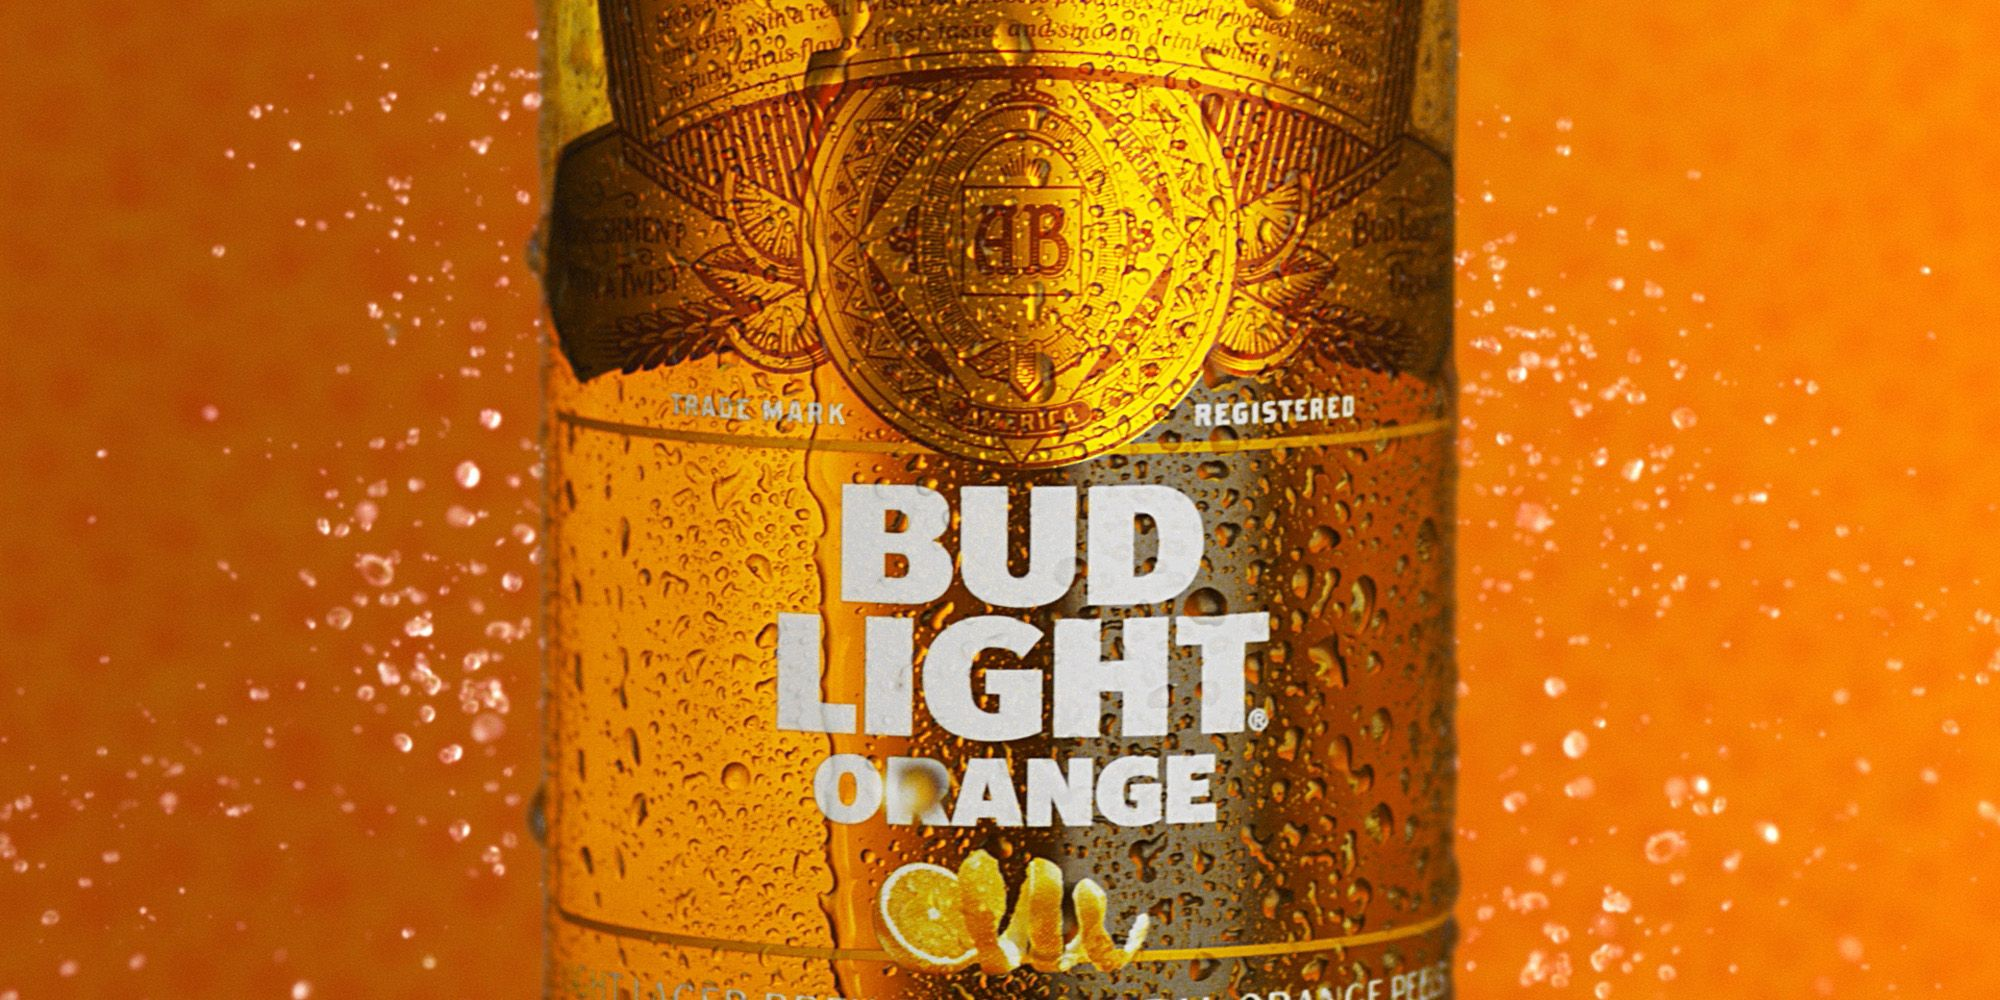 Bud Light Now Comes in Orange Flavor - What Bud Light Orange Tastes Like